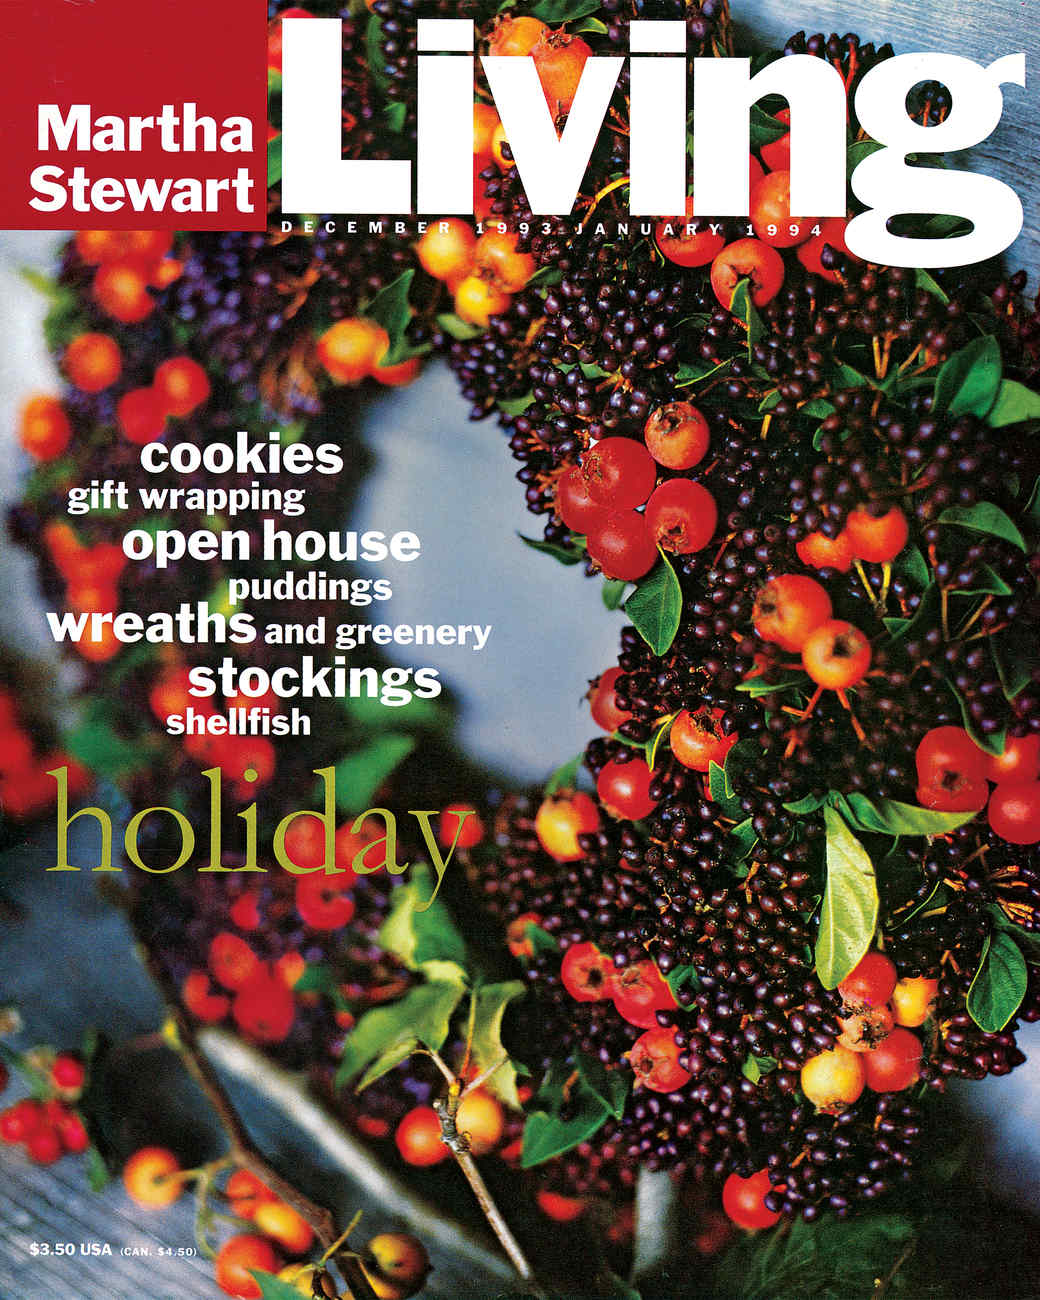 msl-cover-holiday-1993.jpg